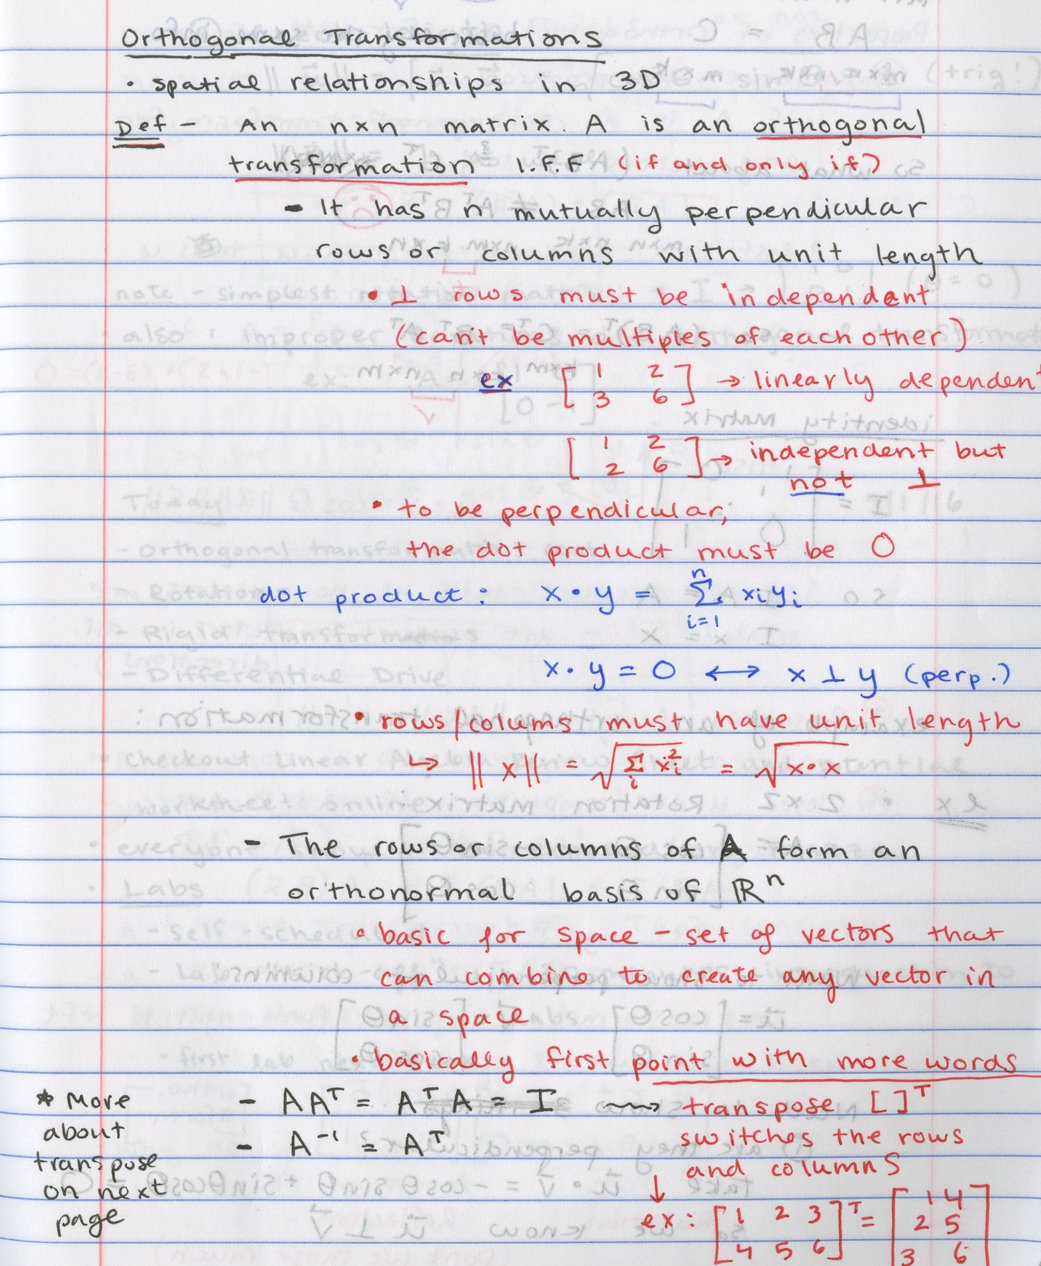 a page of notes